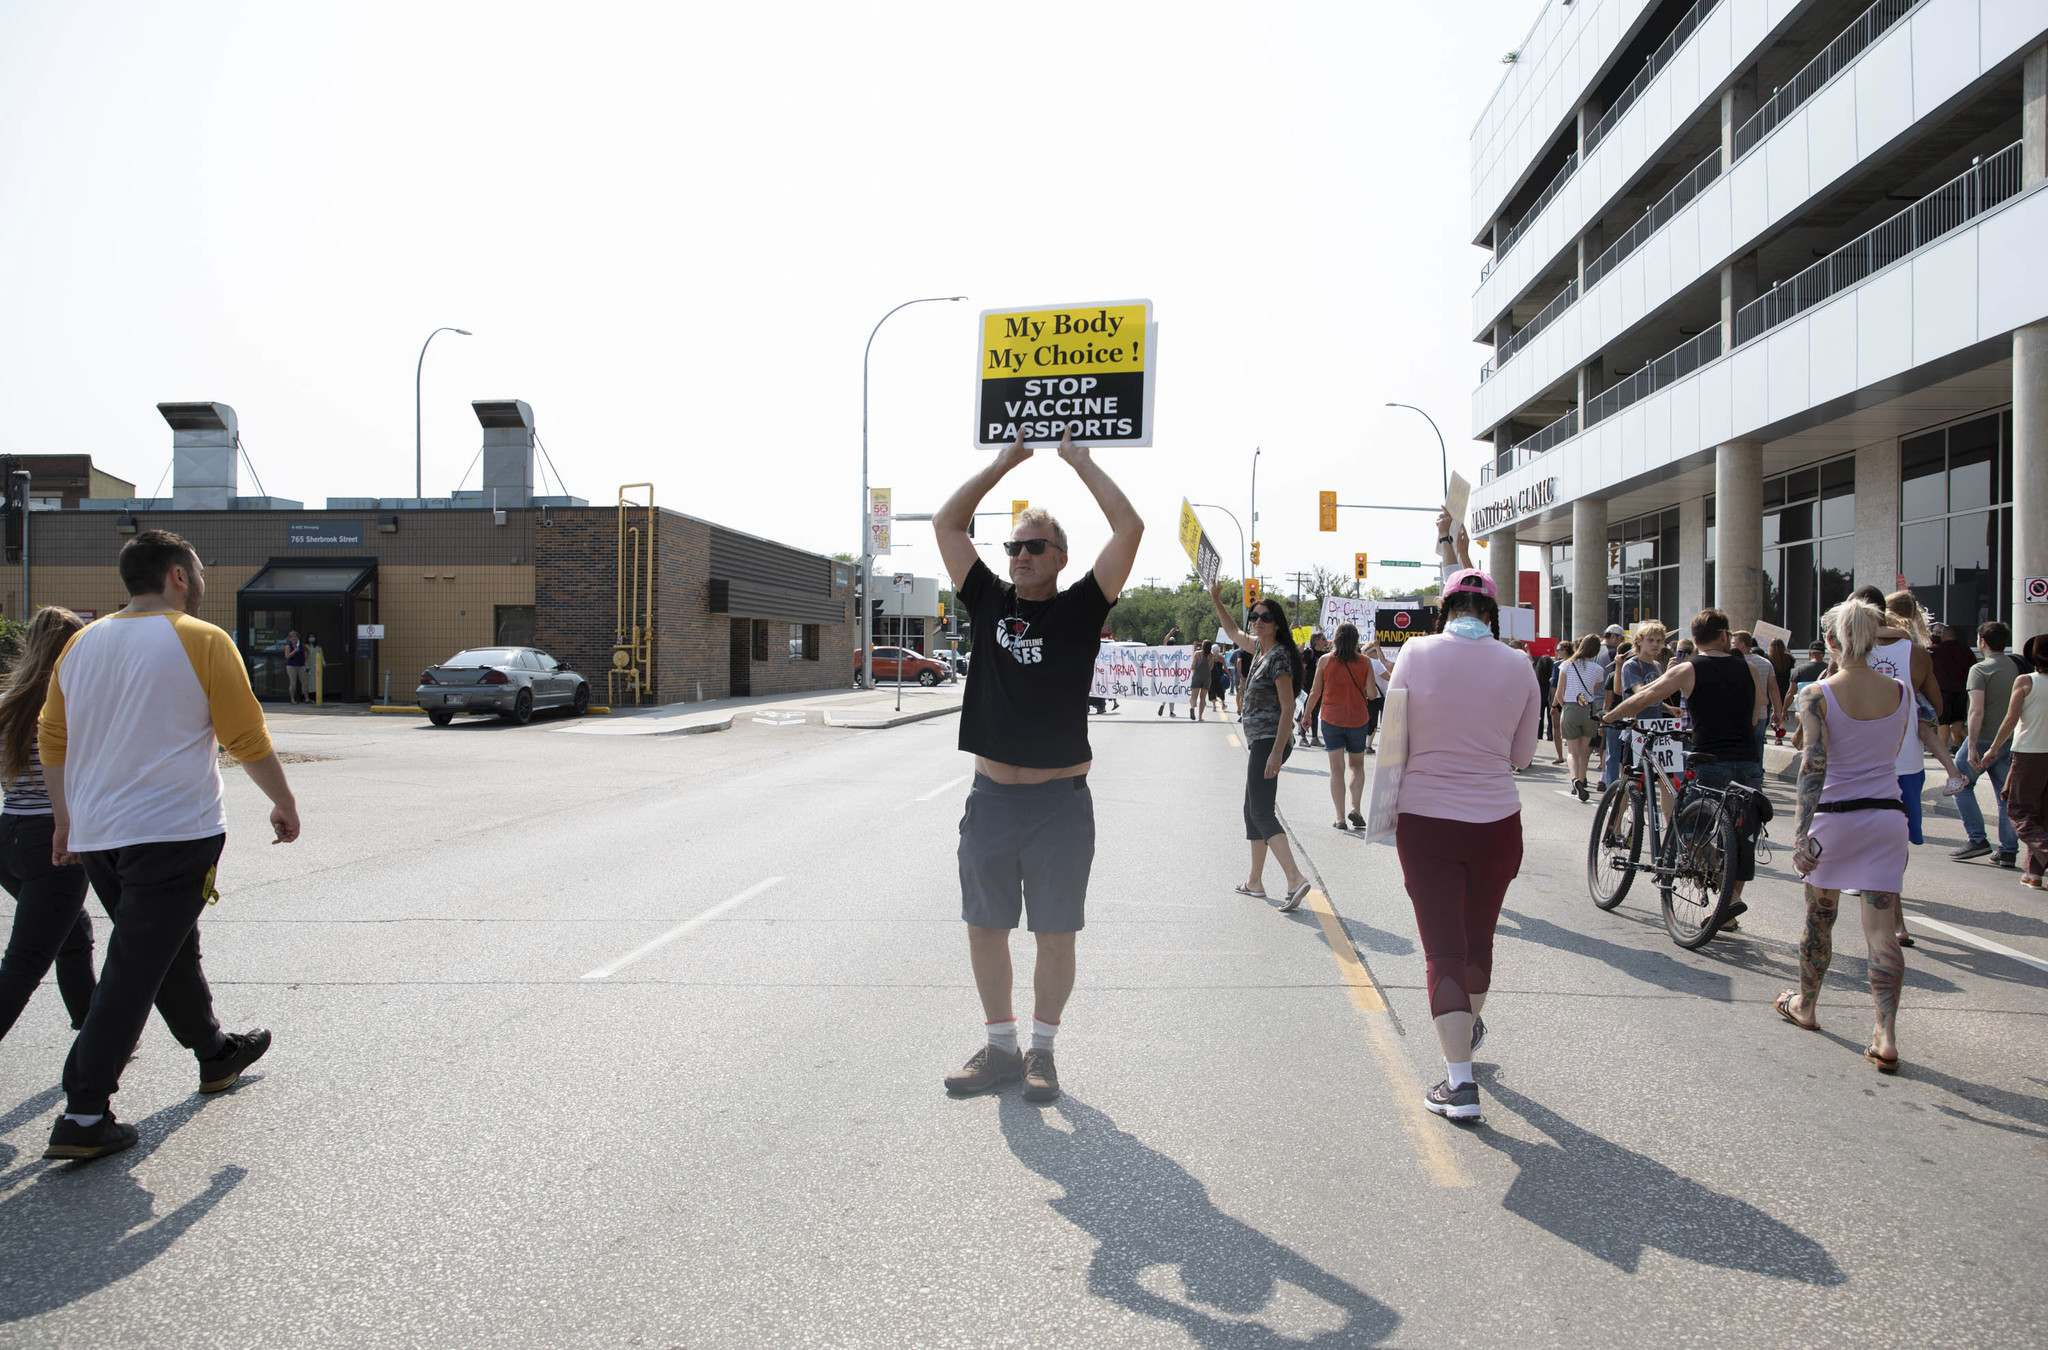 Hundreds gathered outside the Health Sciences Centre in Winnipeg on Wednesday to protest against vaccines, vaccine passports and COVID restrictions.